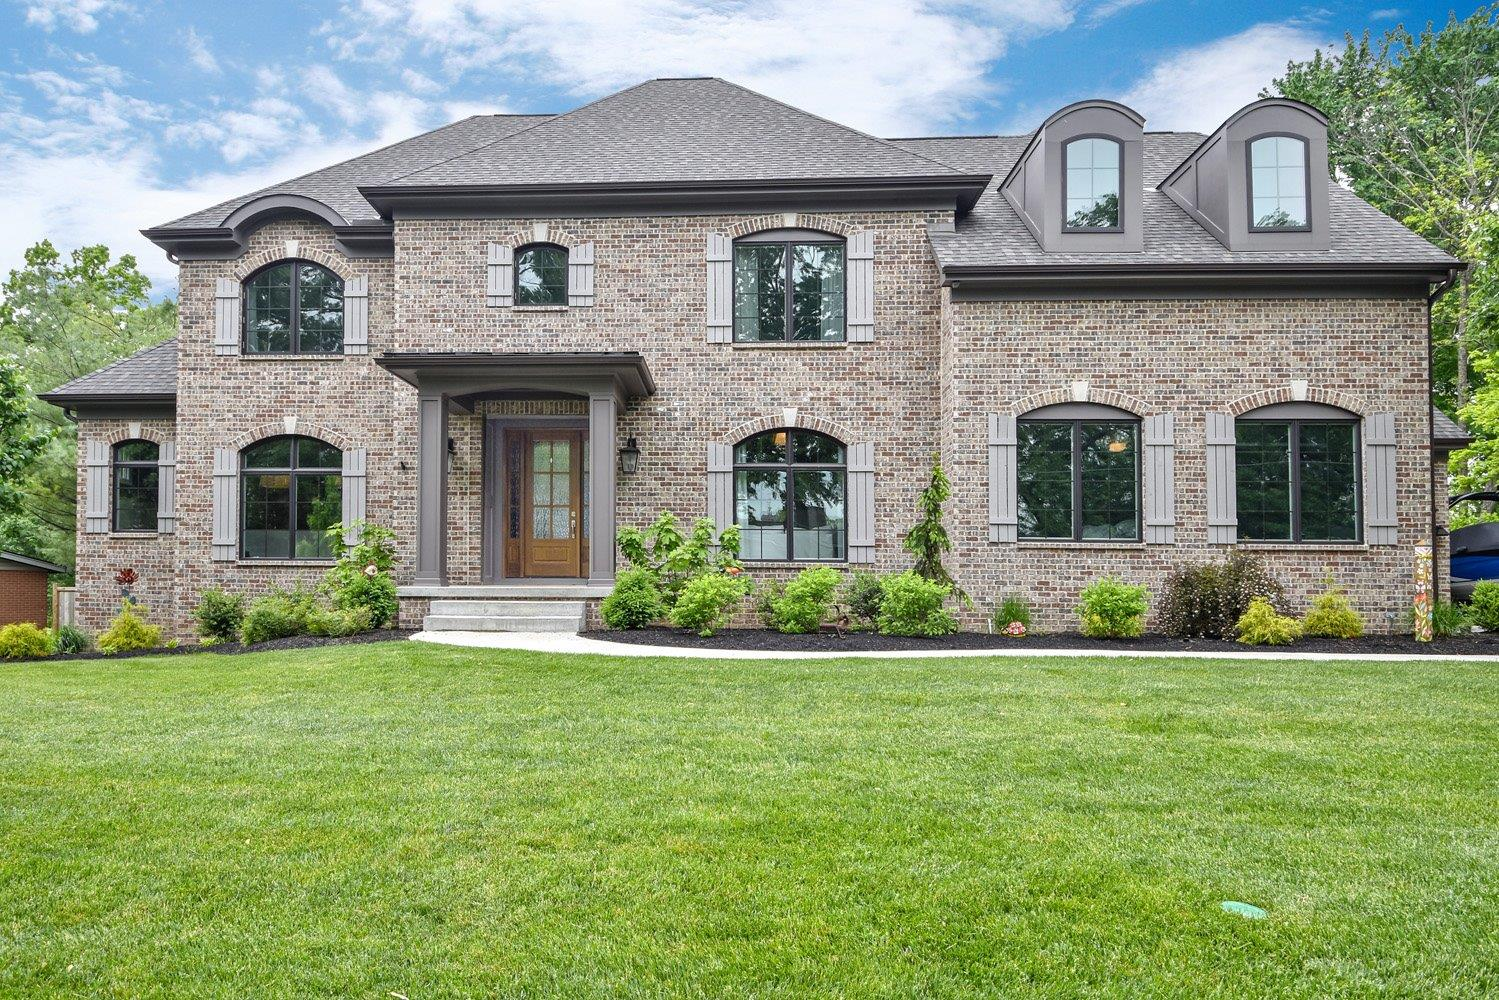 8925 Appleknoll Ln Sycamore Twp., OH